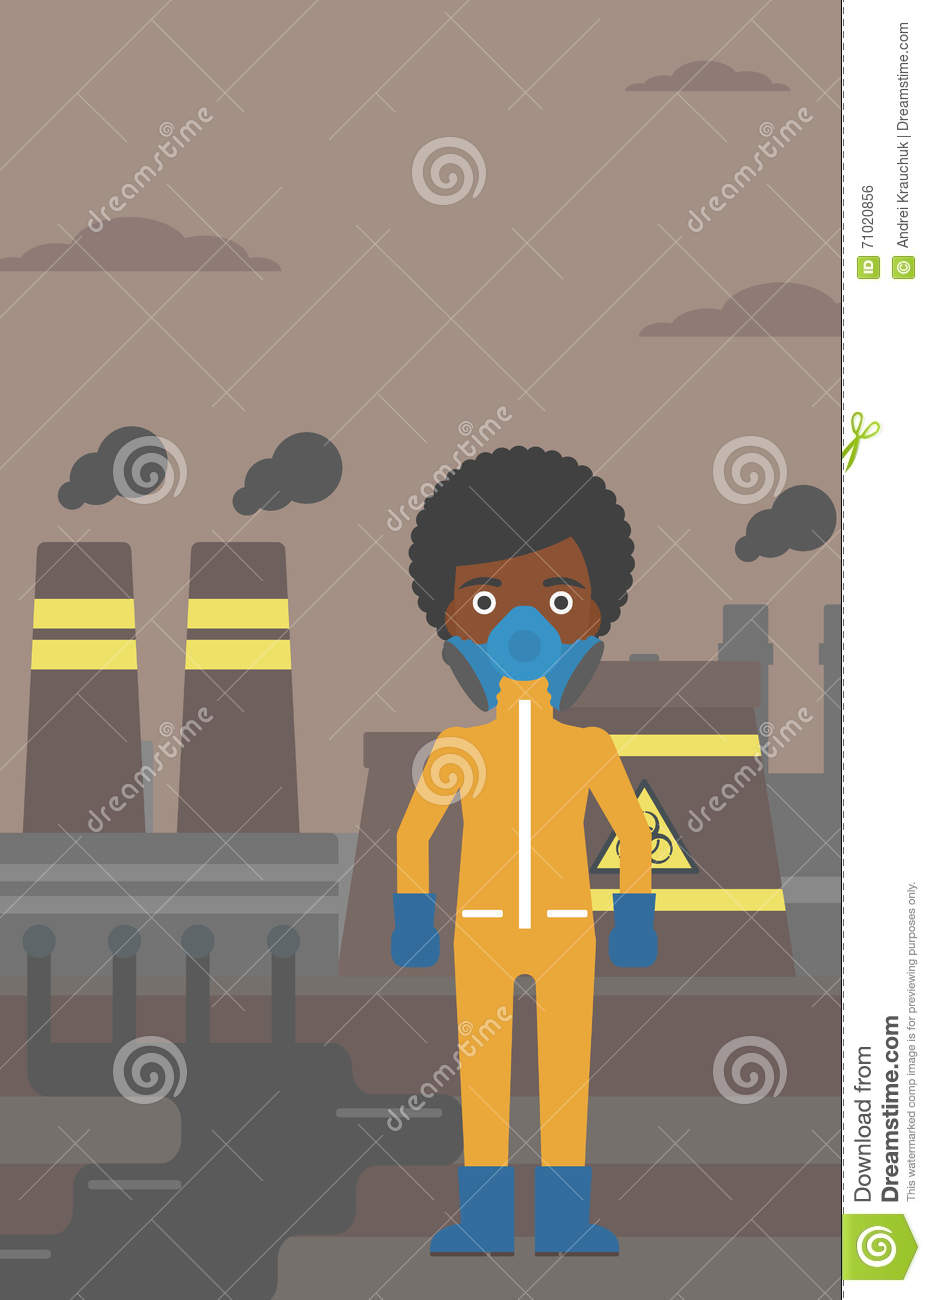 Woman In Protective Chemical Suit Stock Vector Illustration Of Nuclear Power Plant Diagram Animation An African American Wearing A For Toxic Atmosphere On Background Flat Design